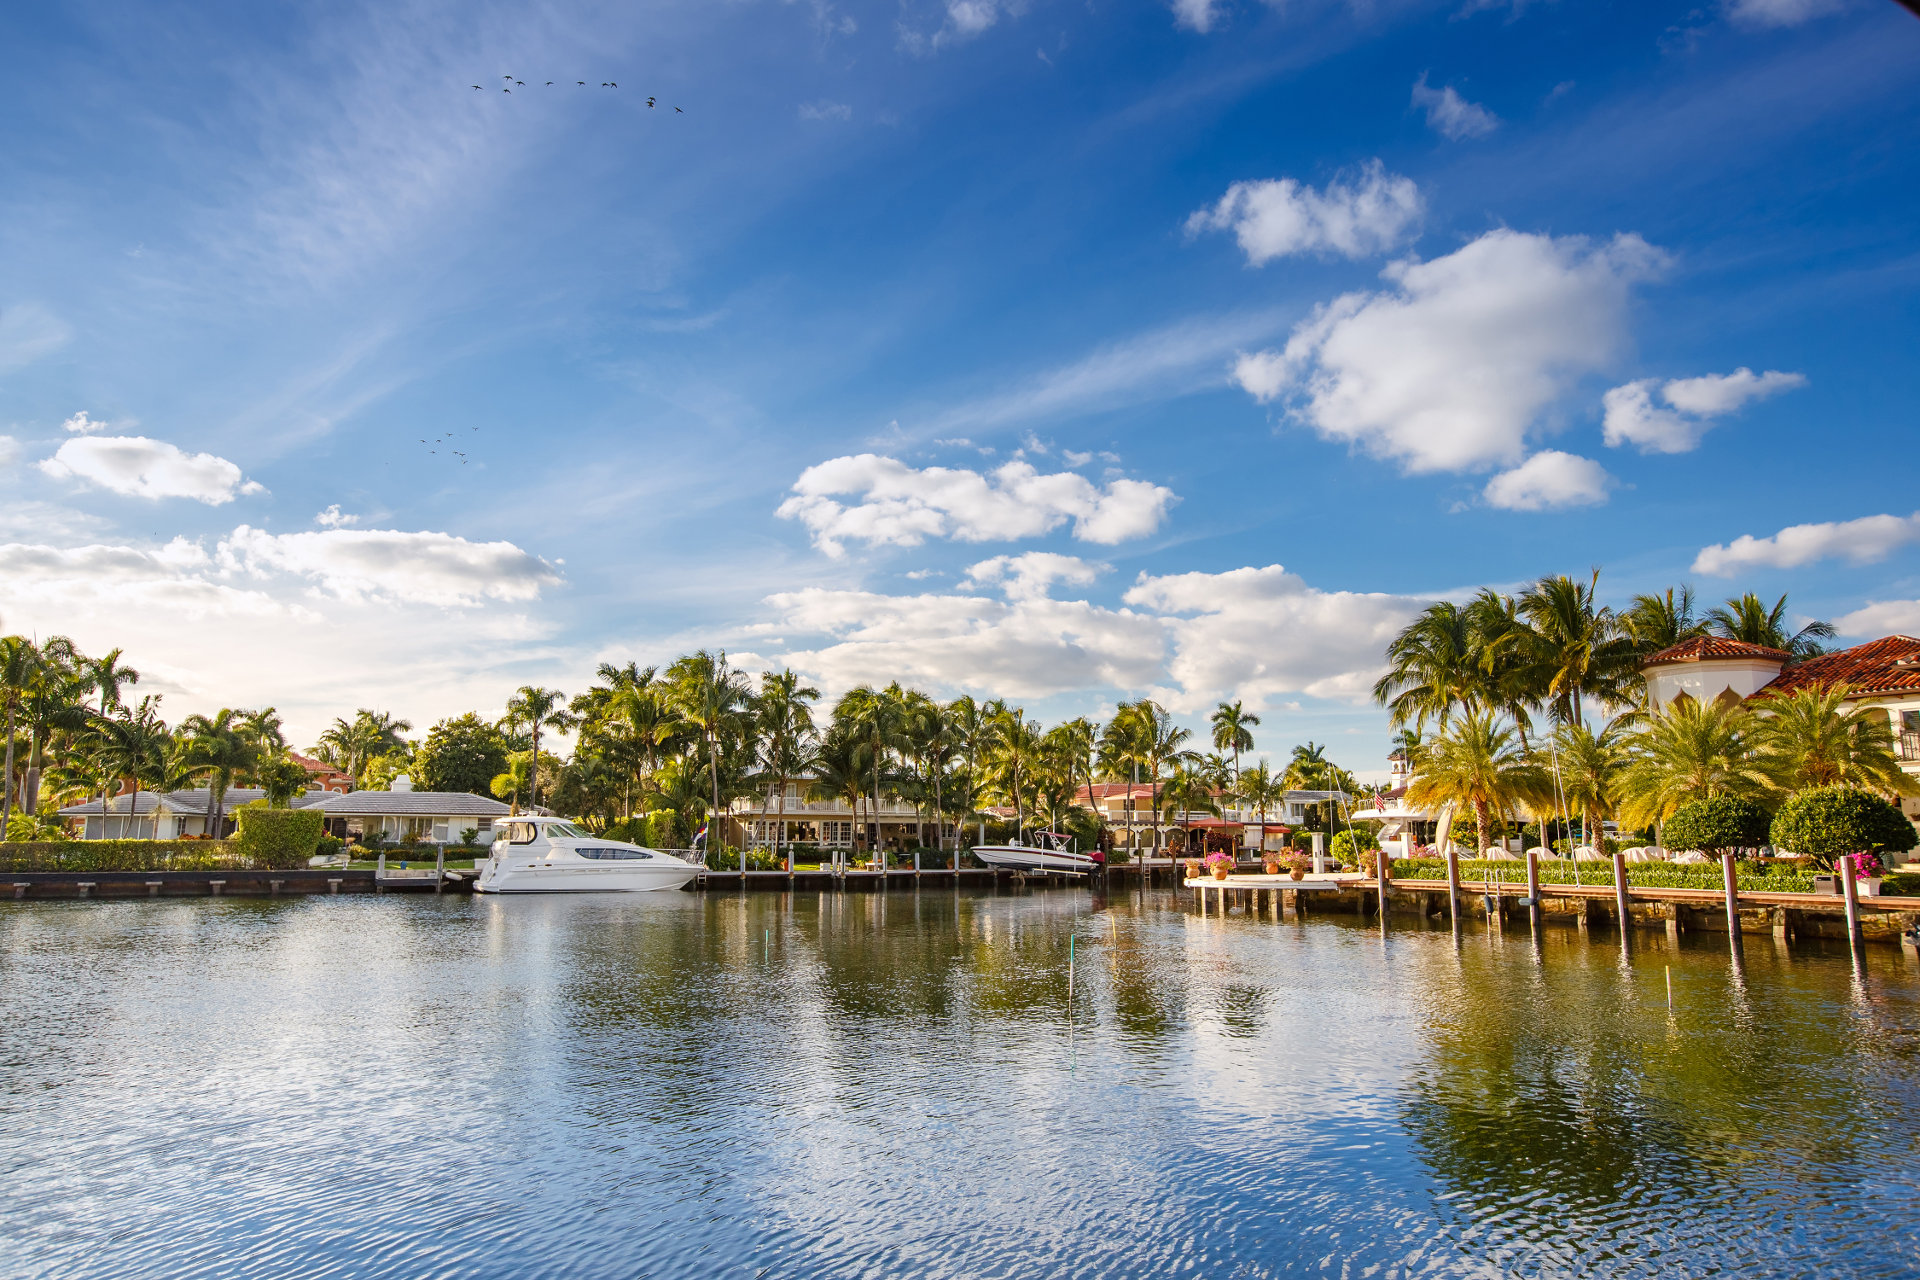 Fort Lauderdale Intracoastal Waterway